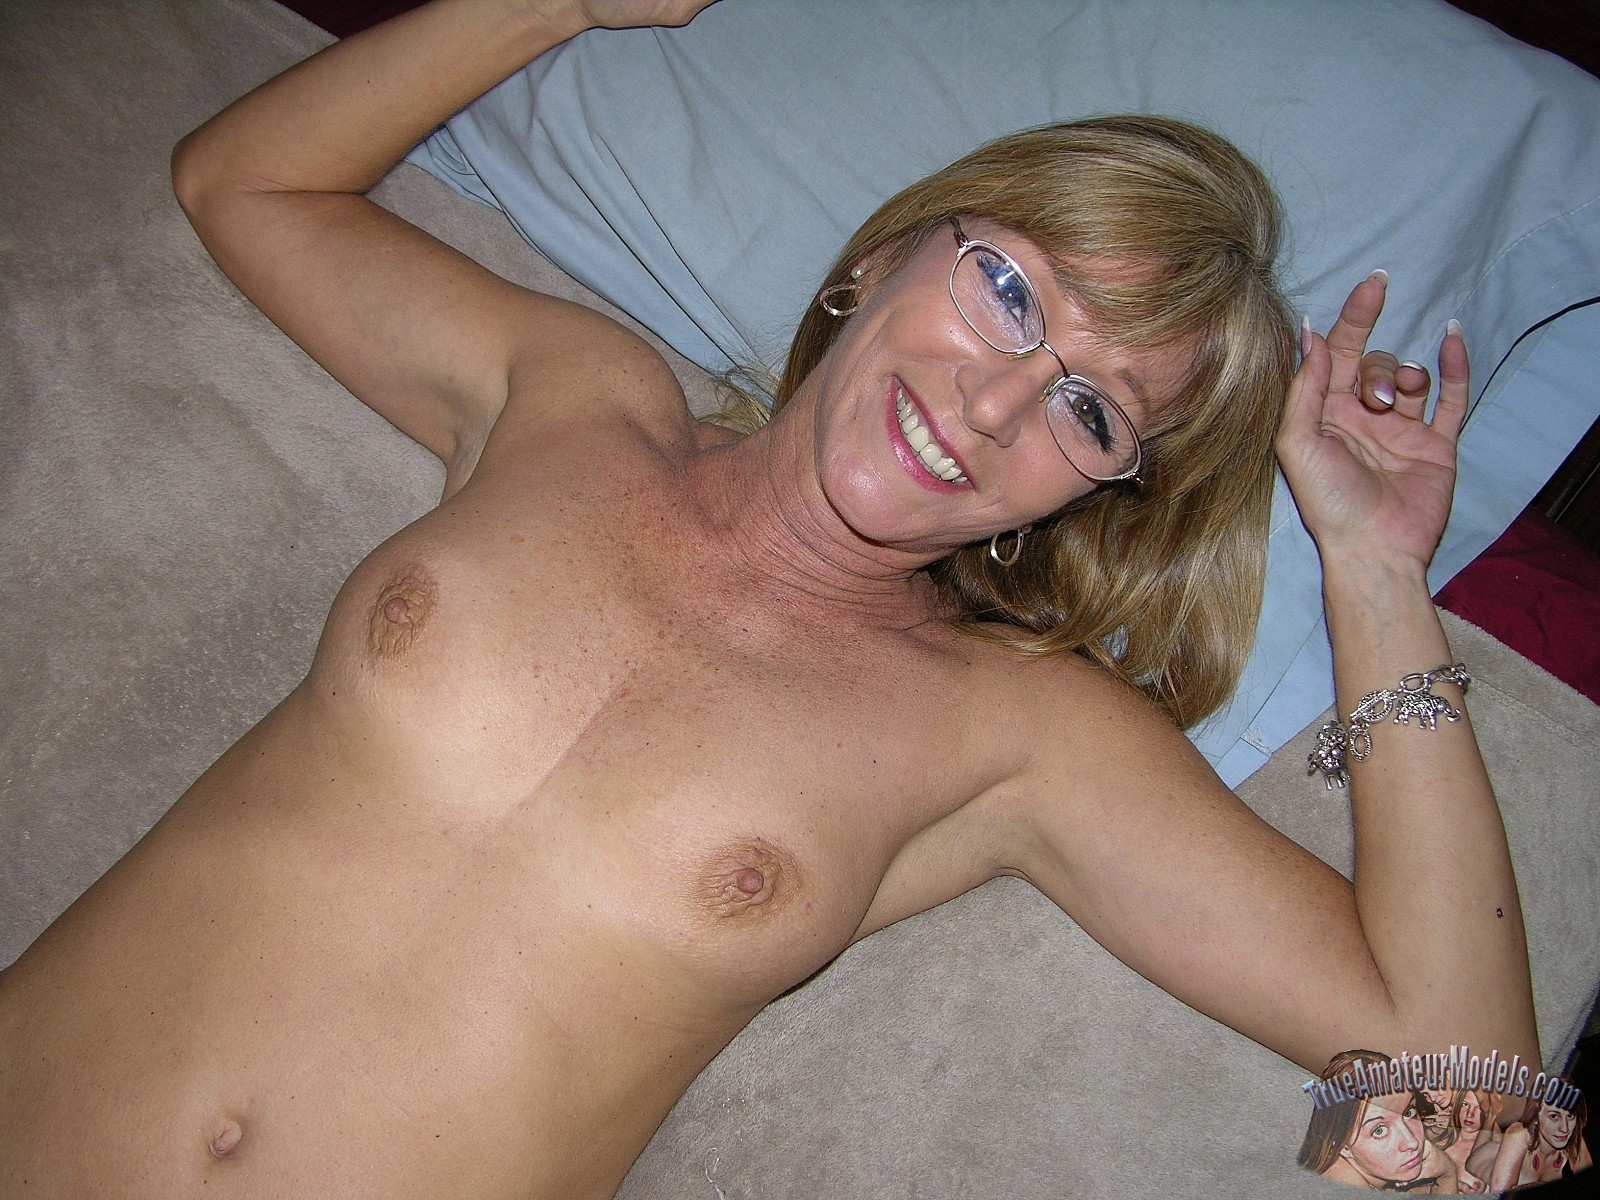 Free full milf movies